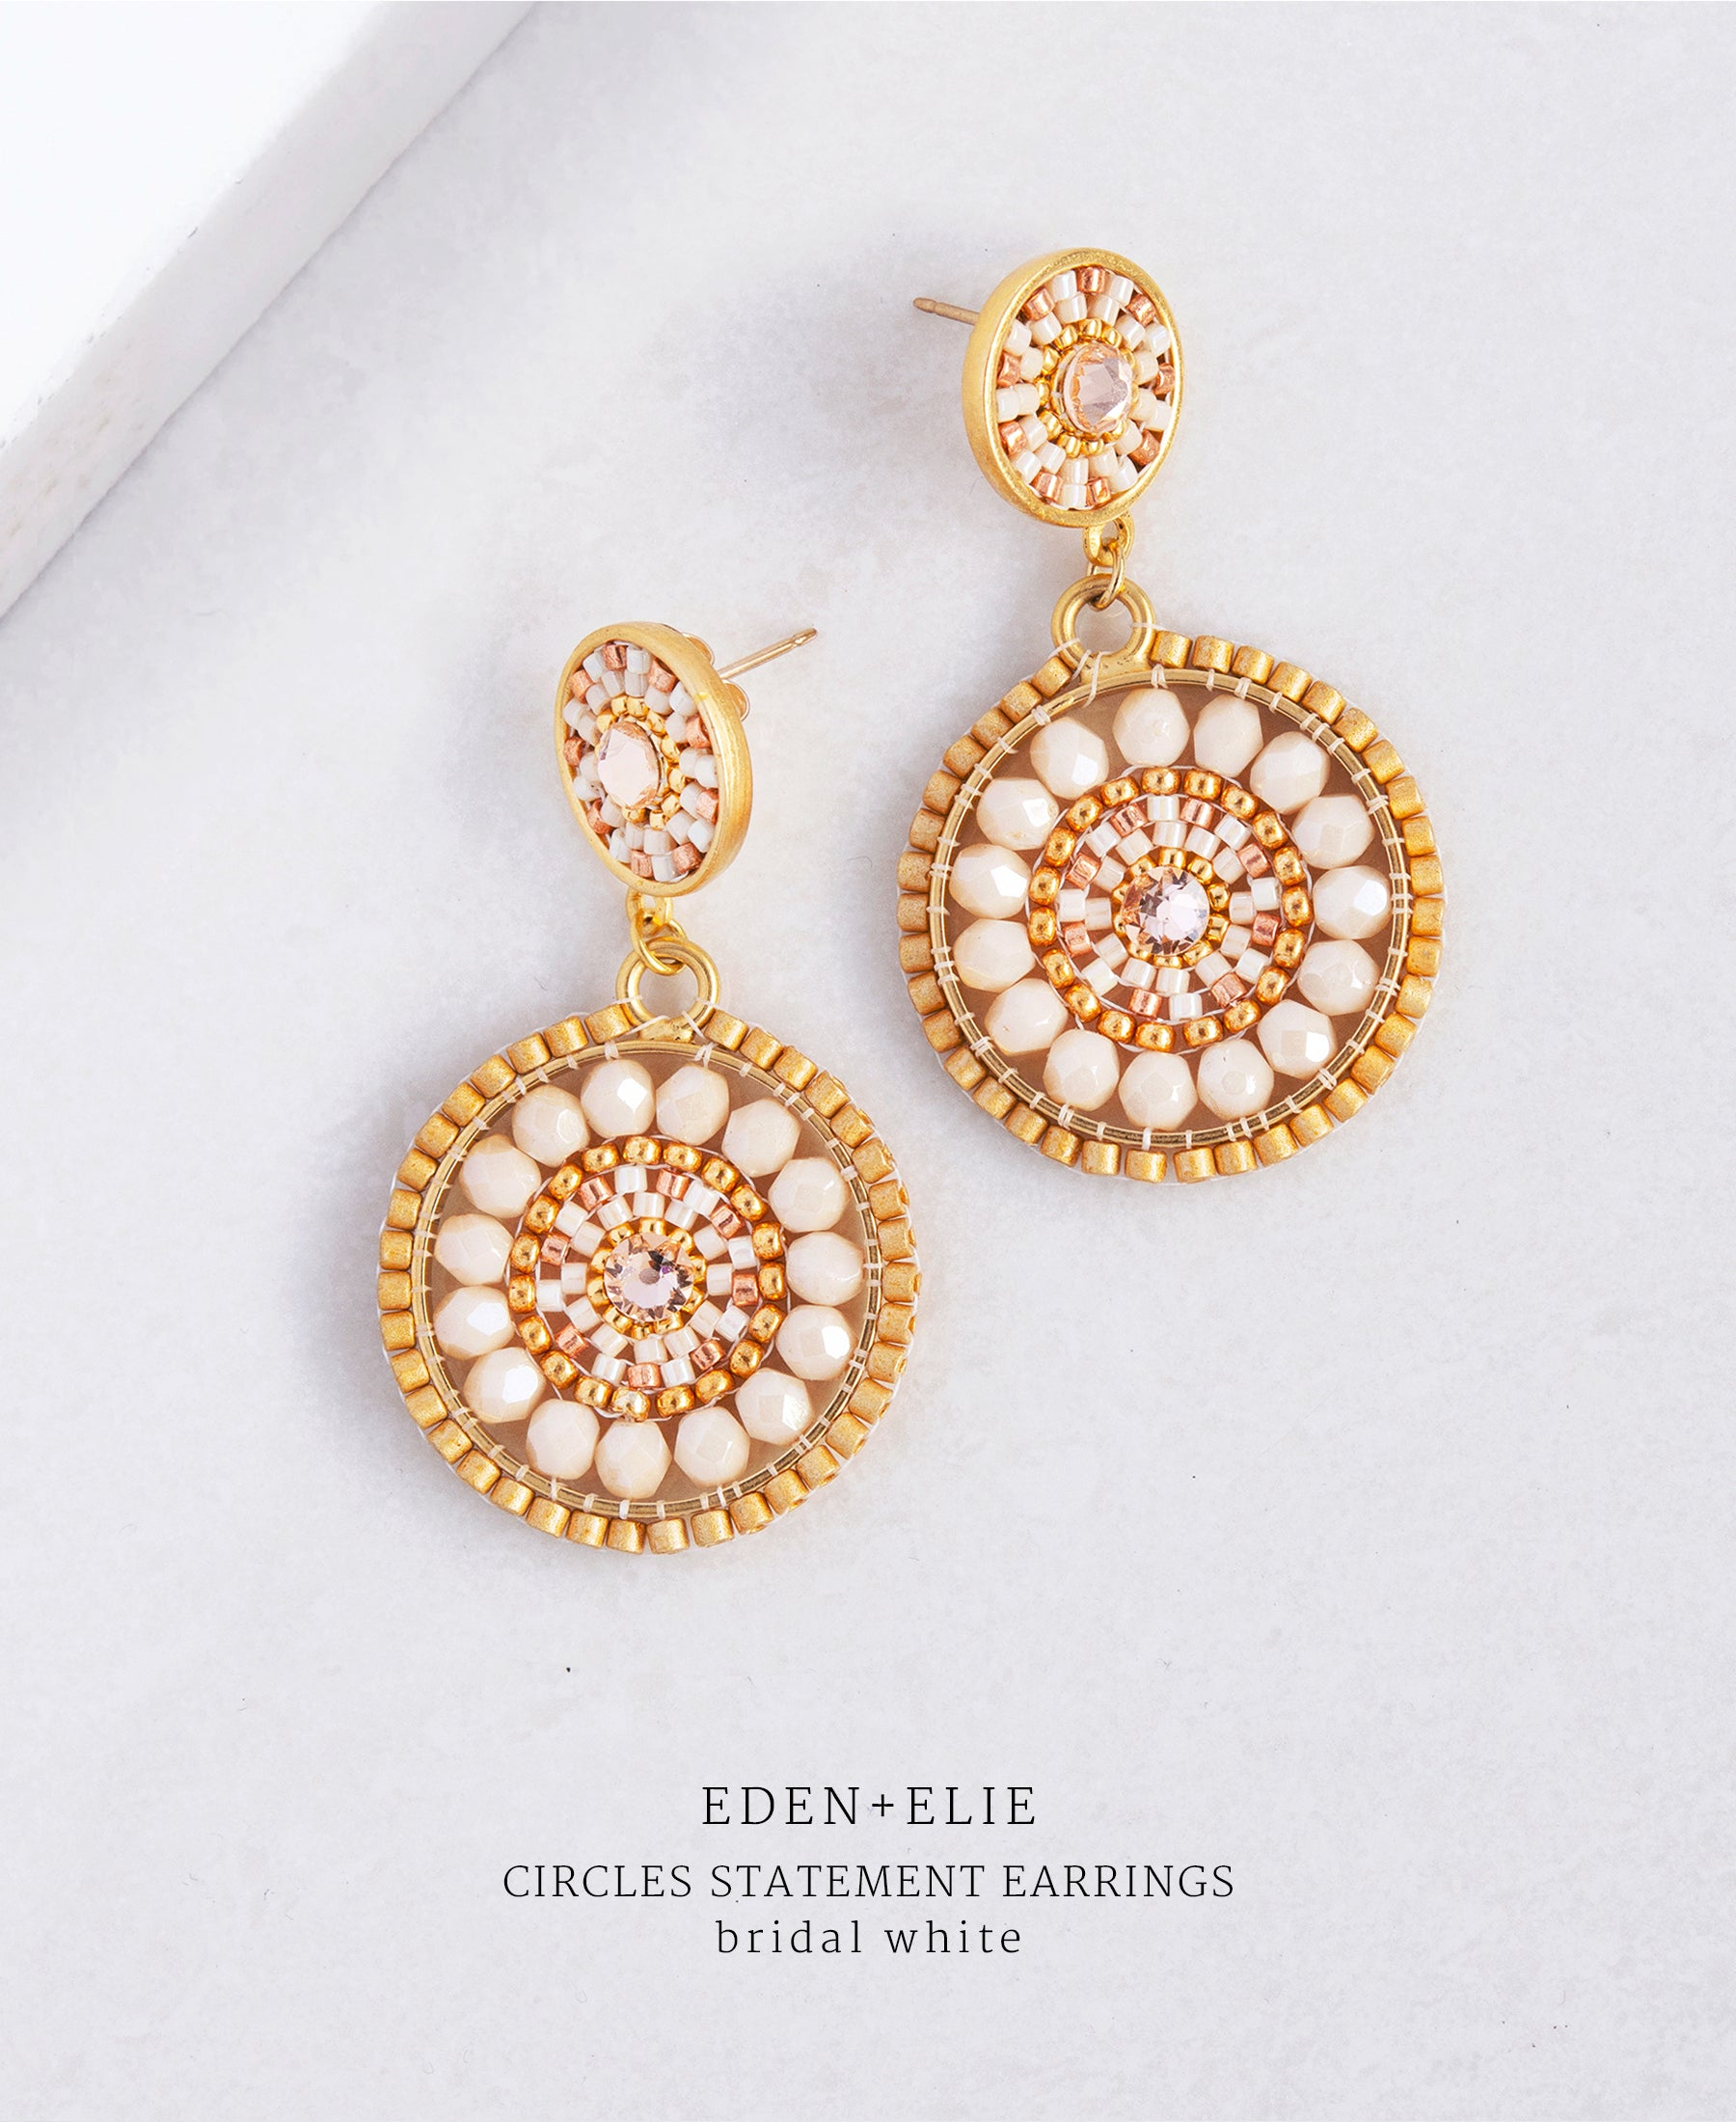 EDEN + ELIE double circle statement drop earrings - bridal white